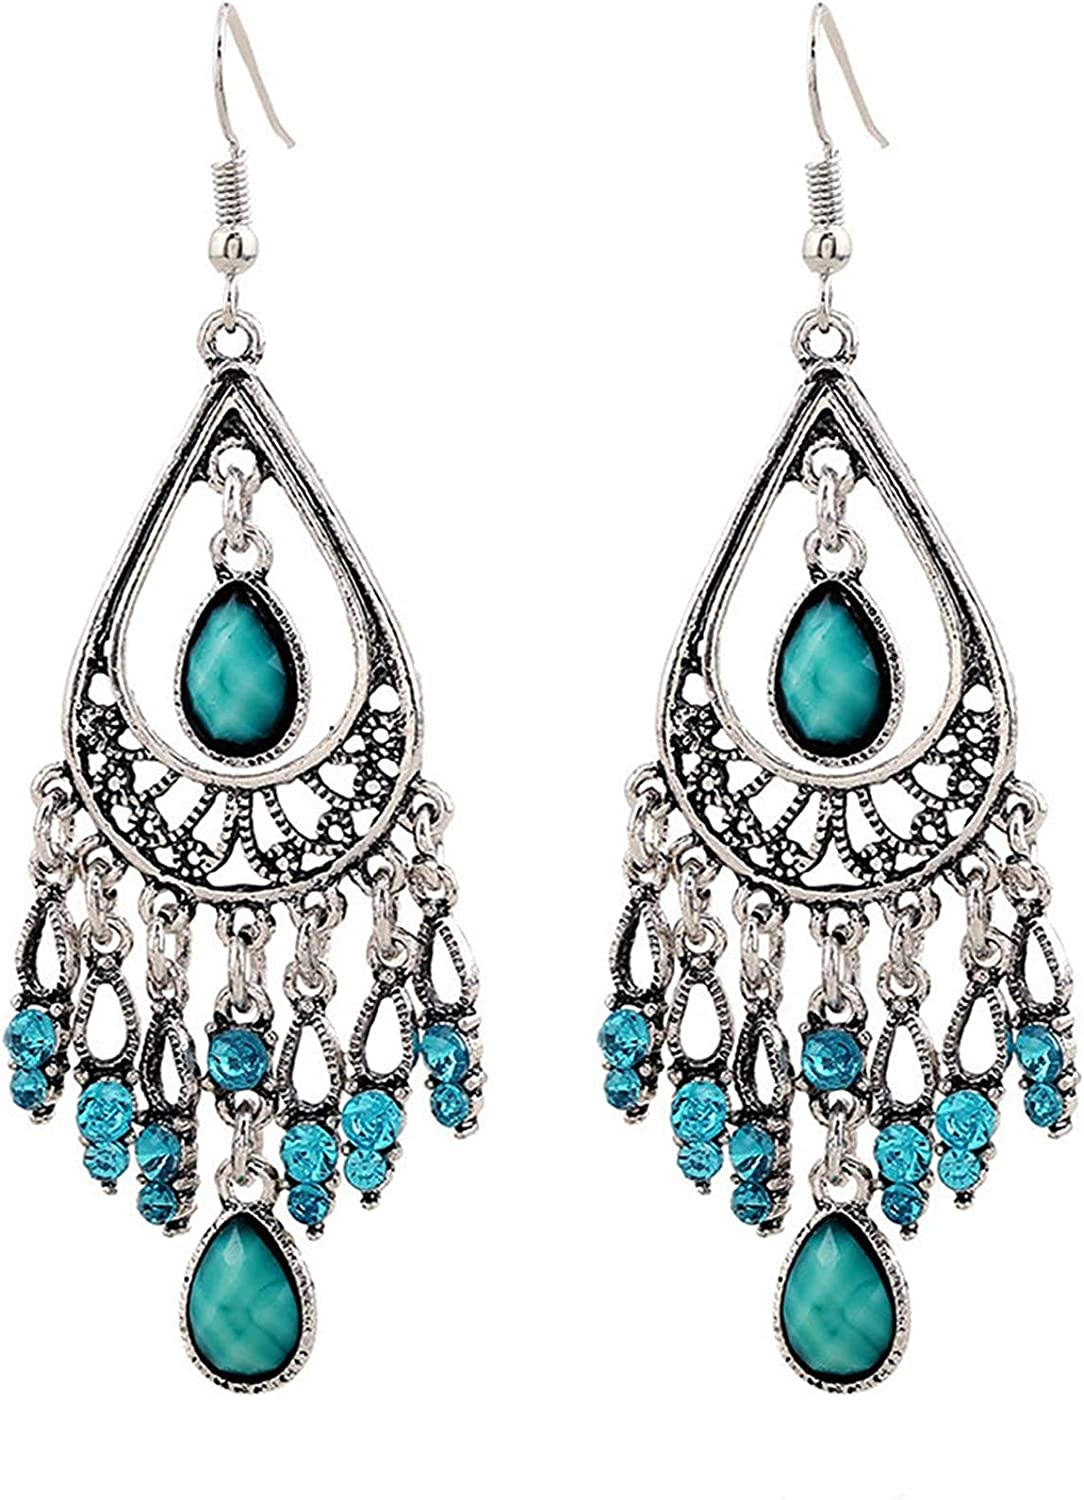 FENGGUO Vintage Dangling Earrings Boho Cheap sale Water Turquoise Ranking TOP6 D Ethnic